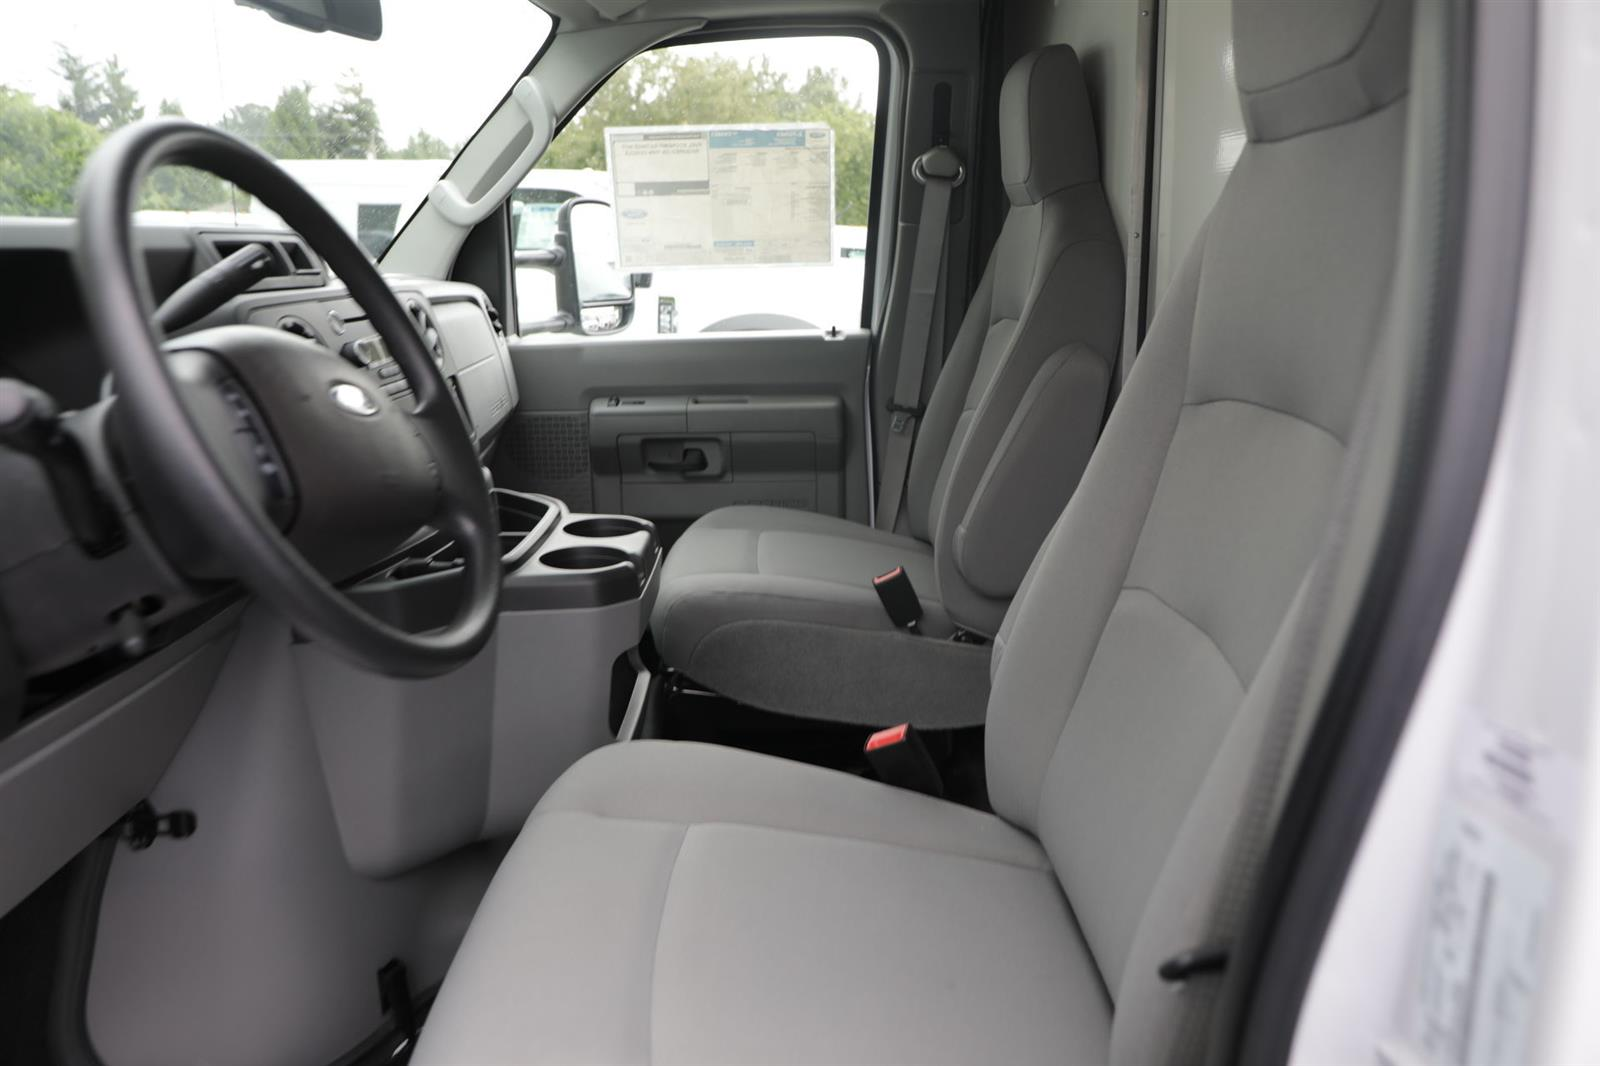 2019 Ford E-350 4x2, Supreme Iner-City Cutaway Van #E9430 - photo 13